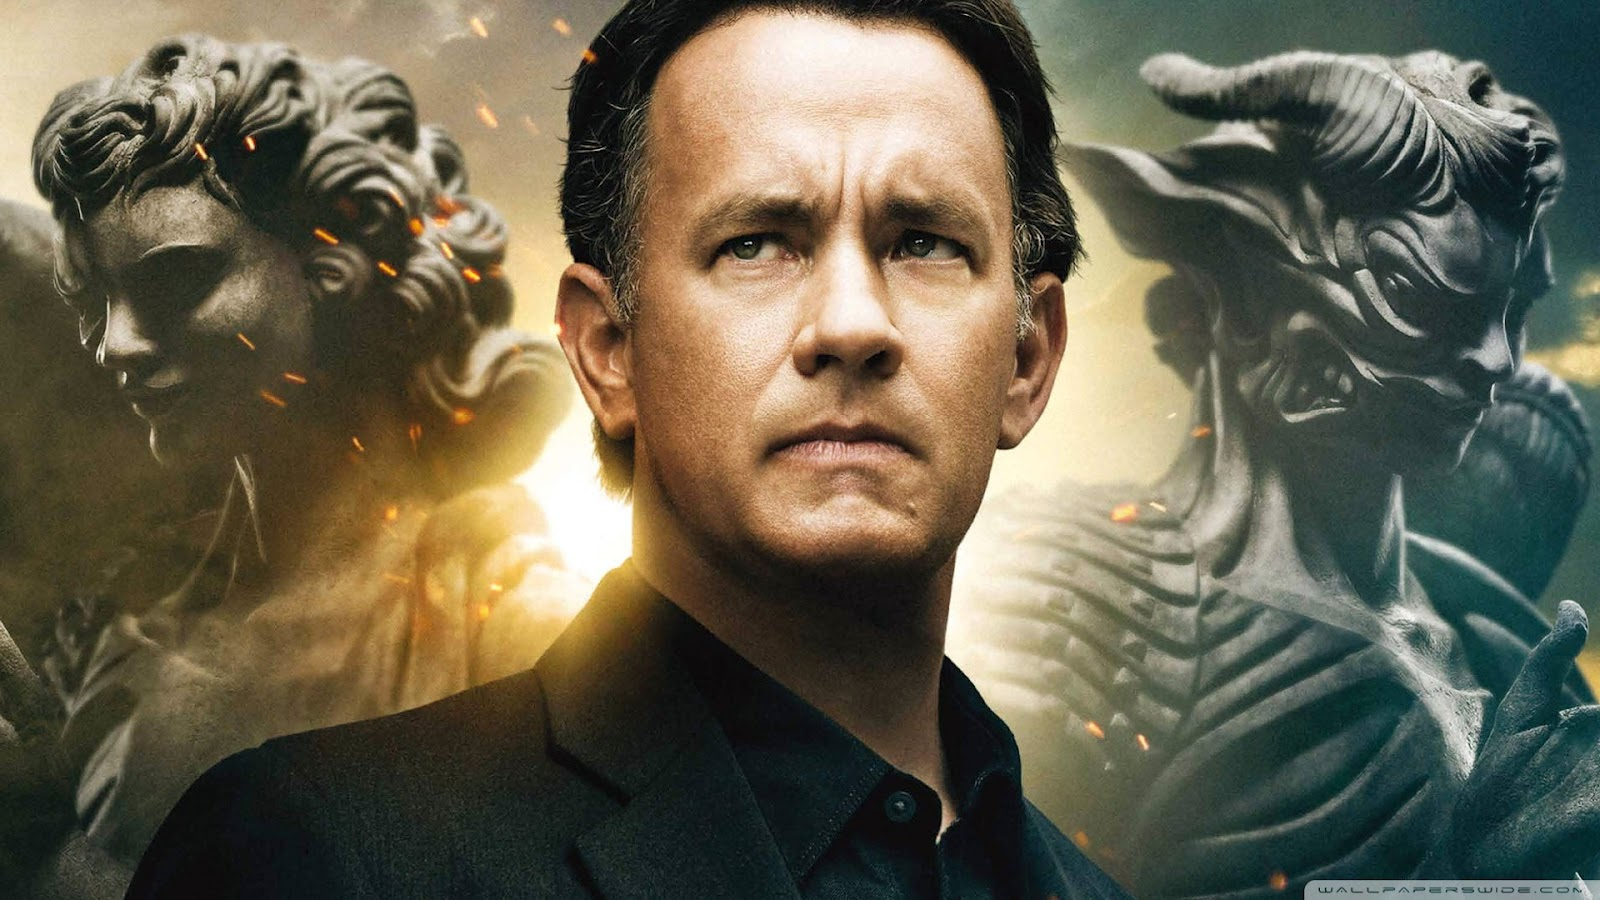 http://1.bp.blogspot.com/-5t2N33GE9GE/T1A_HqZMgiI/AAAAAAAABzs/ZaX38el53Fw/s1600/tom_hanks_angels_and_demons-wallpaper-1920x1080.jpg